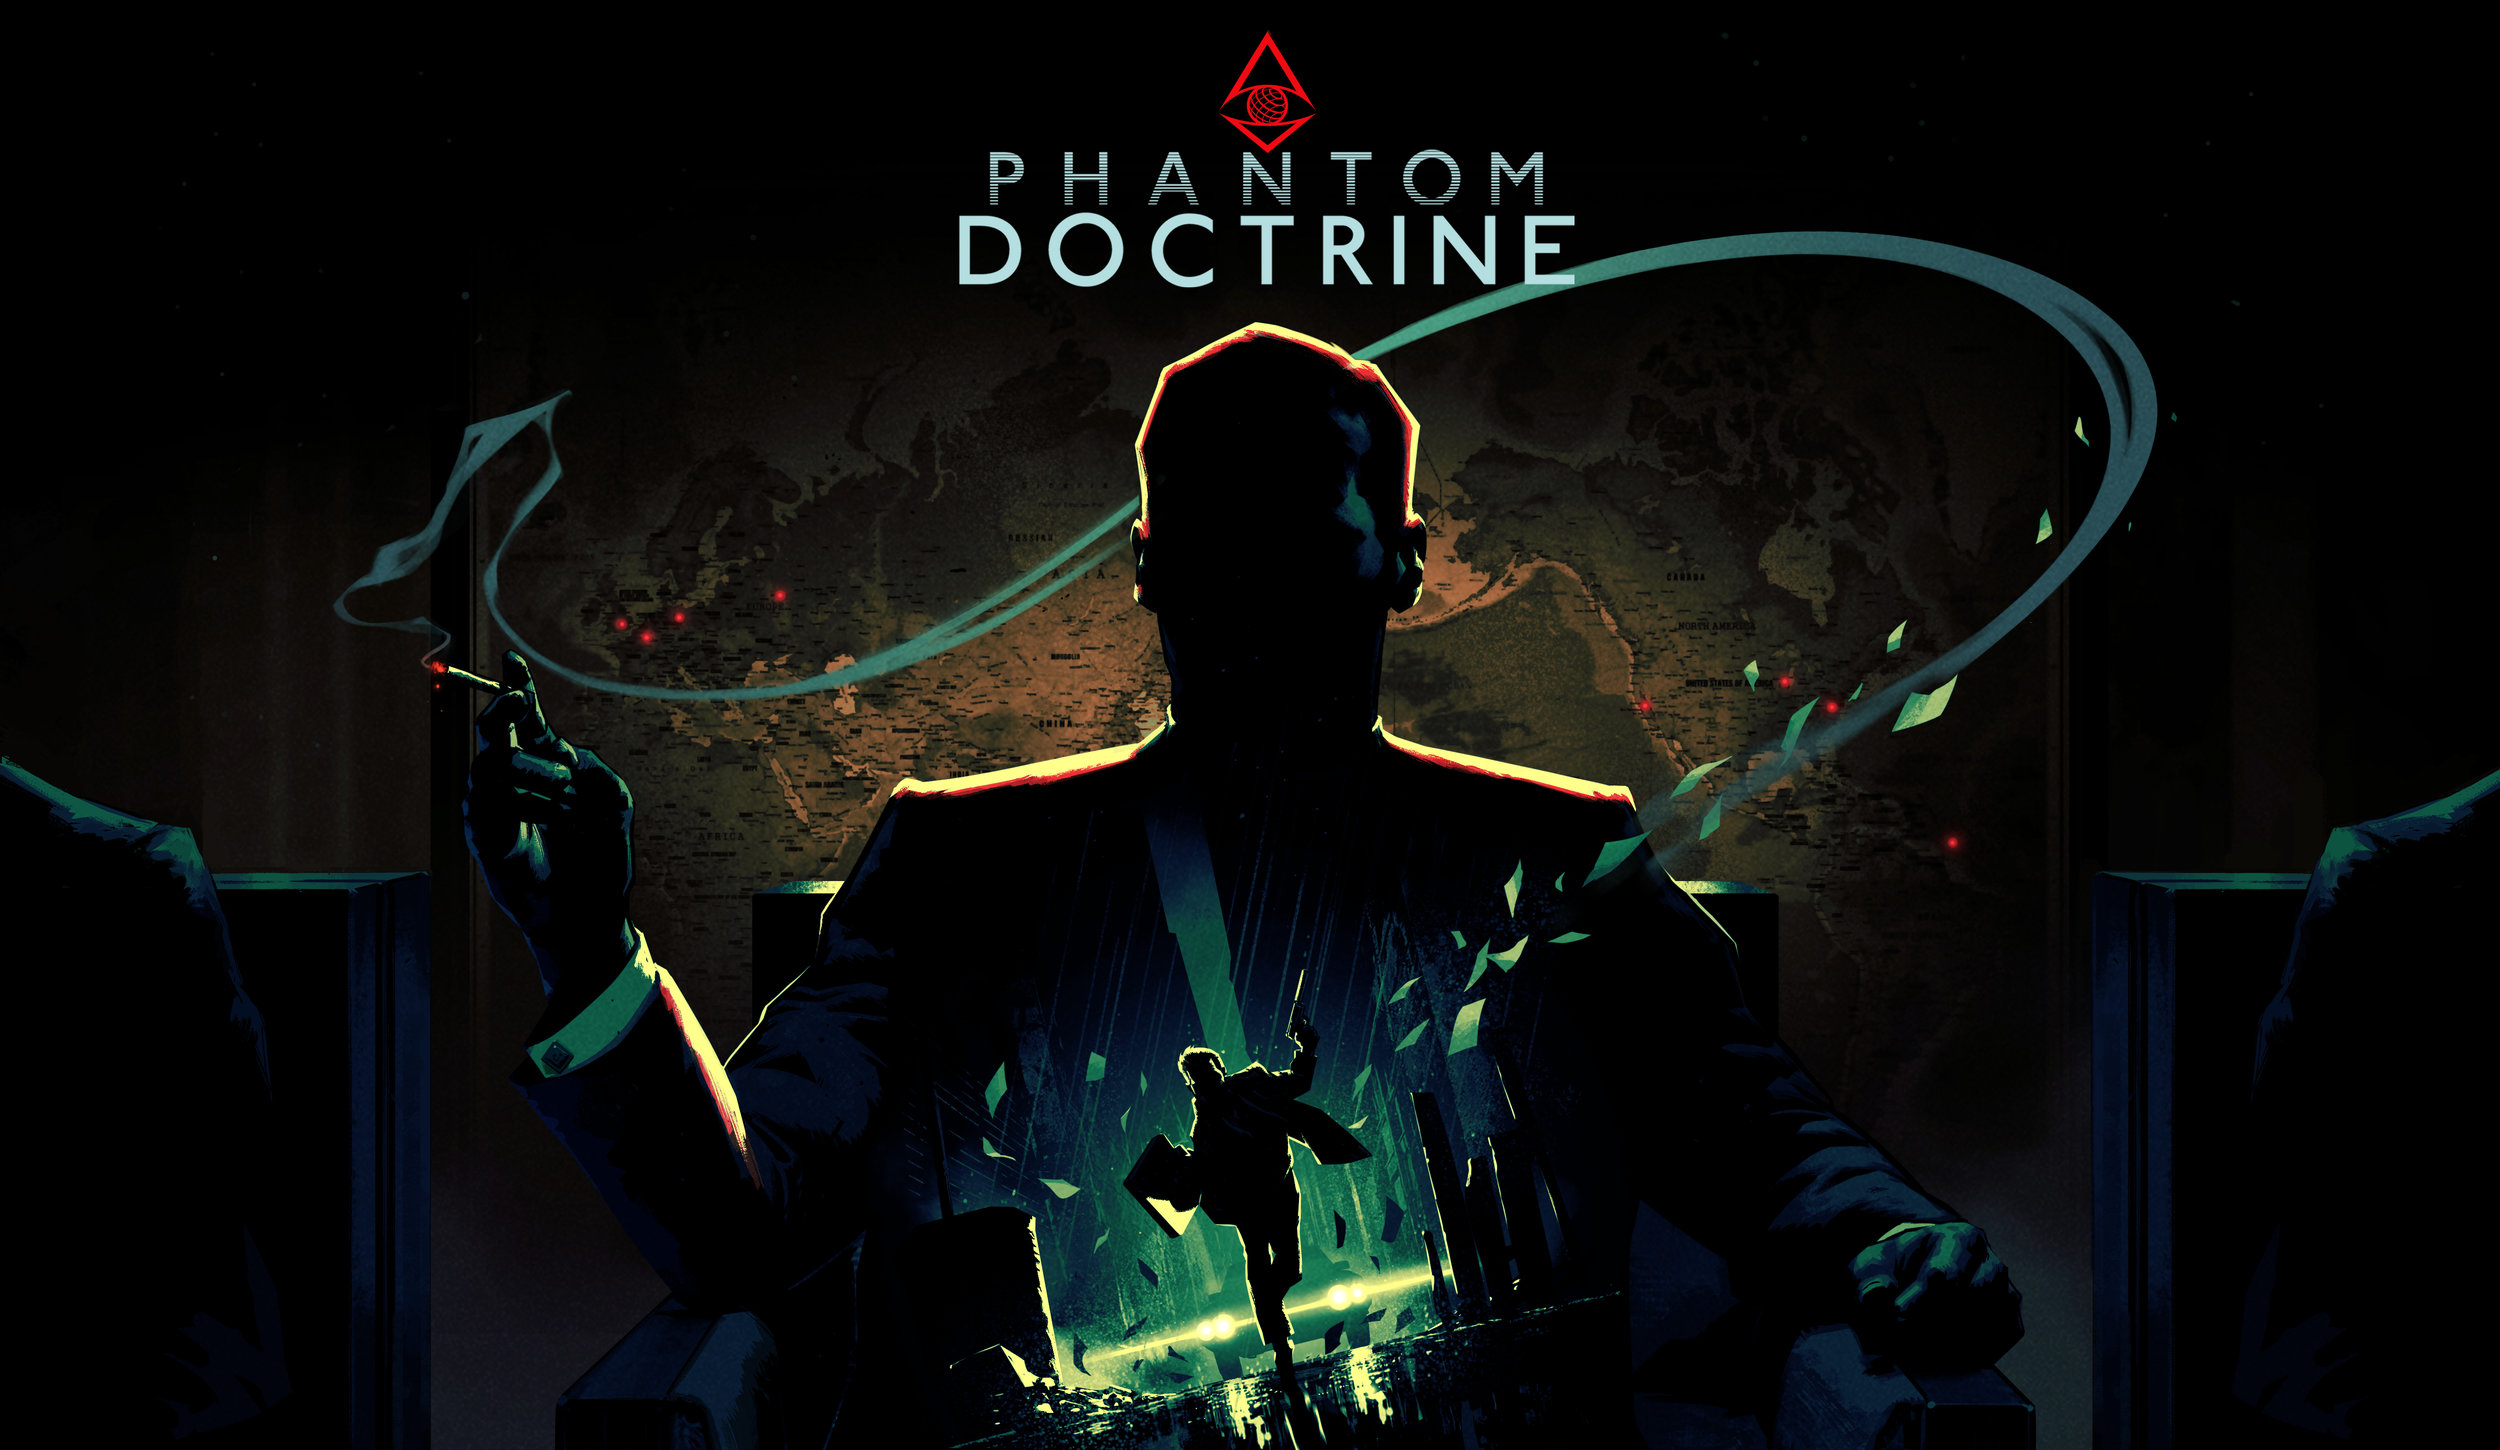 Phantom Doctrine Announcement Artwork